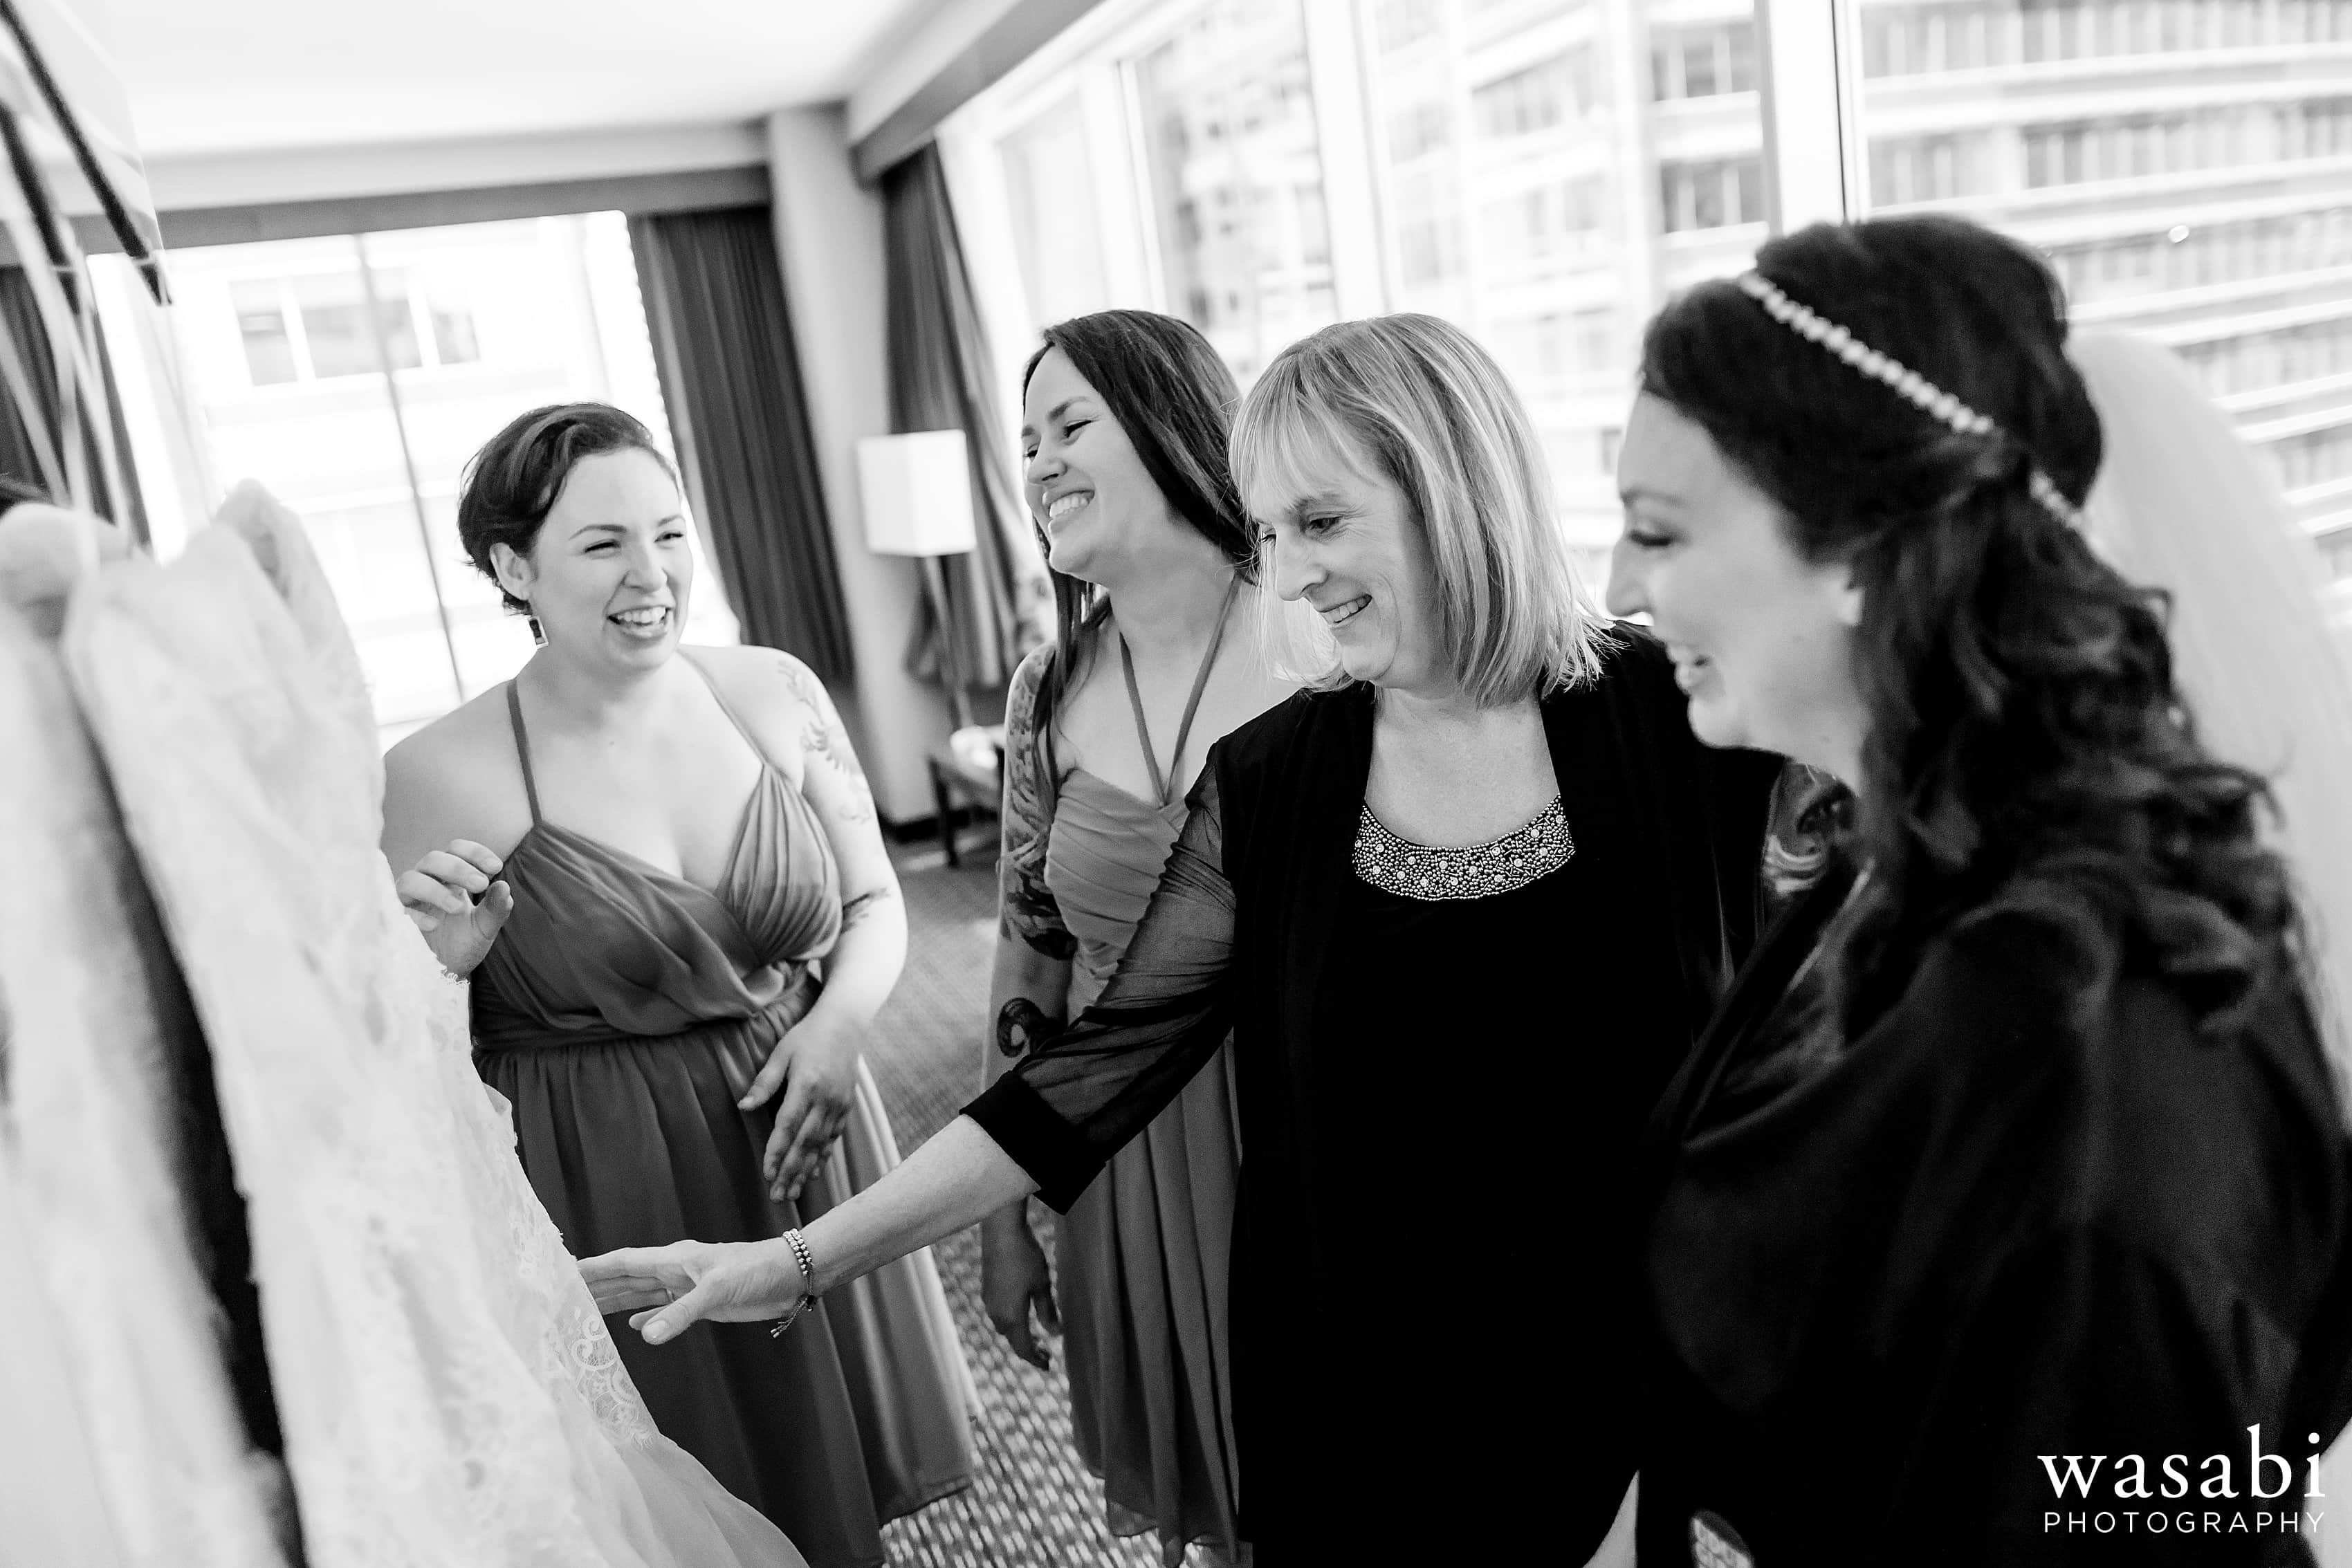 A bride looks at dress with her mother and bridesmaids while getting ready for her wedding at La Quinta Inn & Suites in downtown Chicago